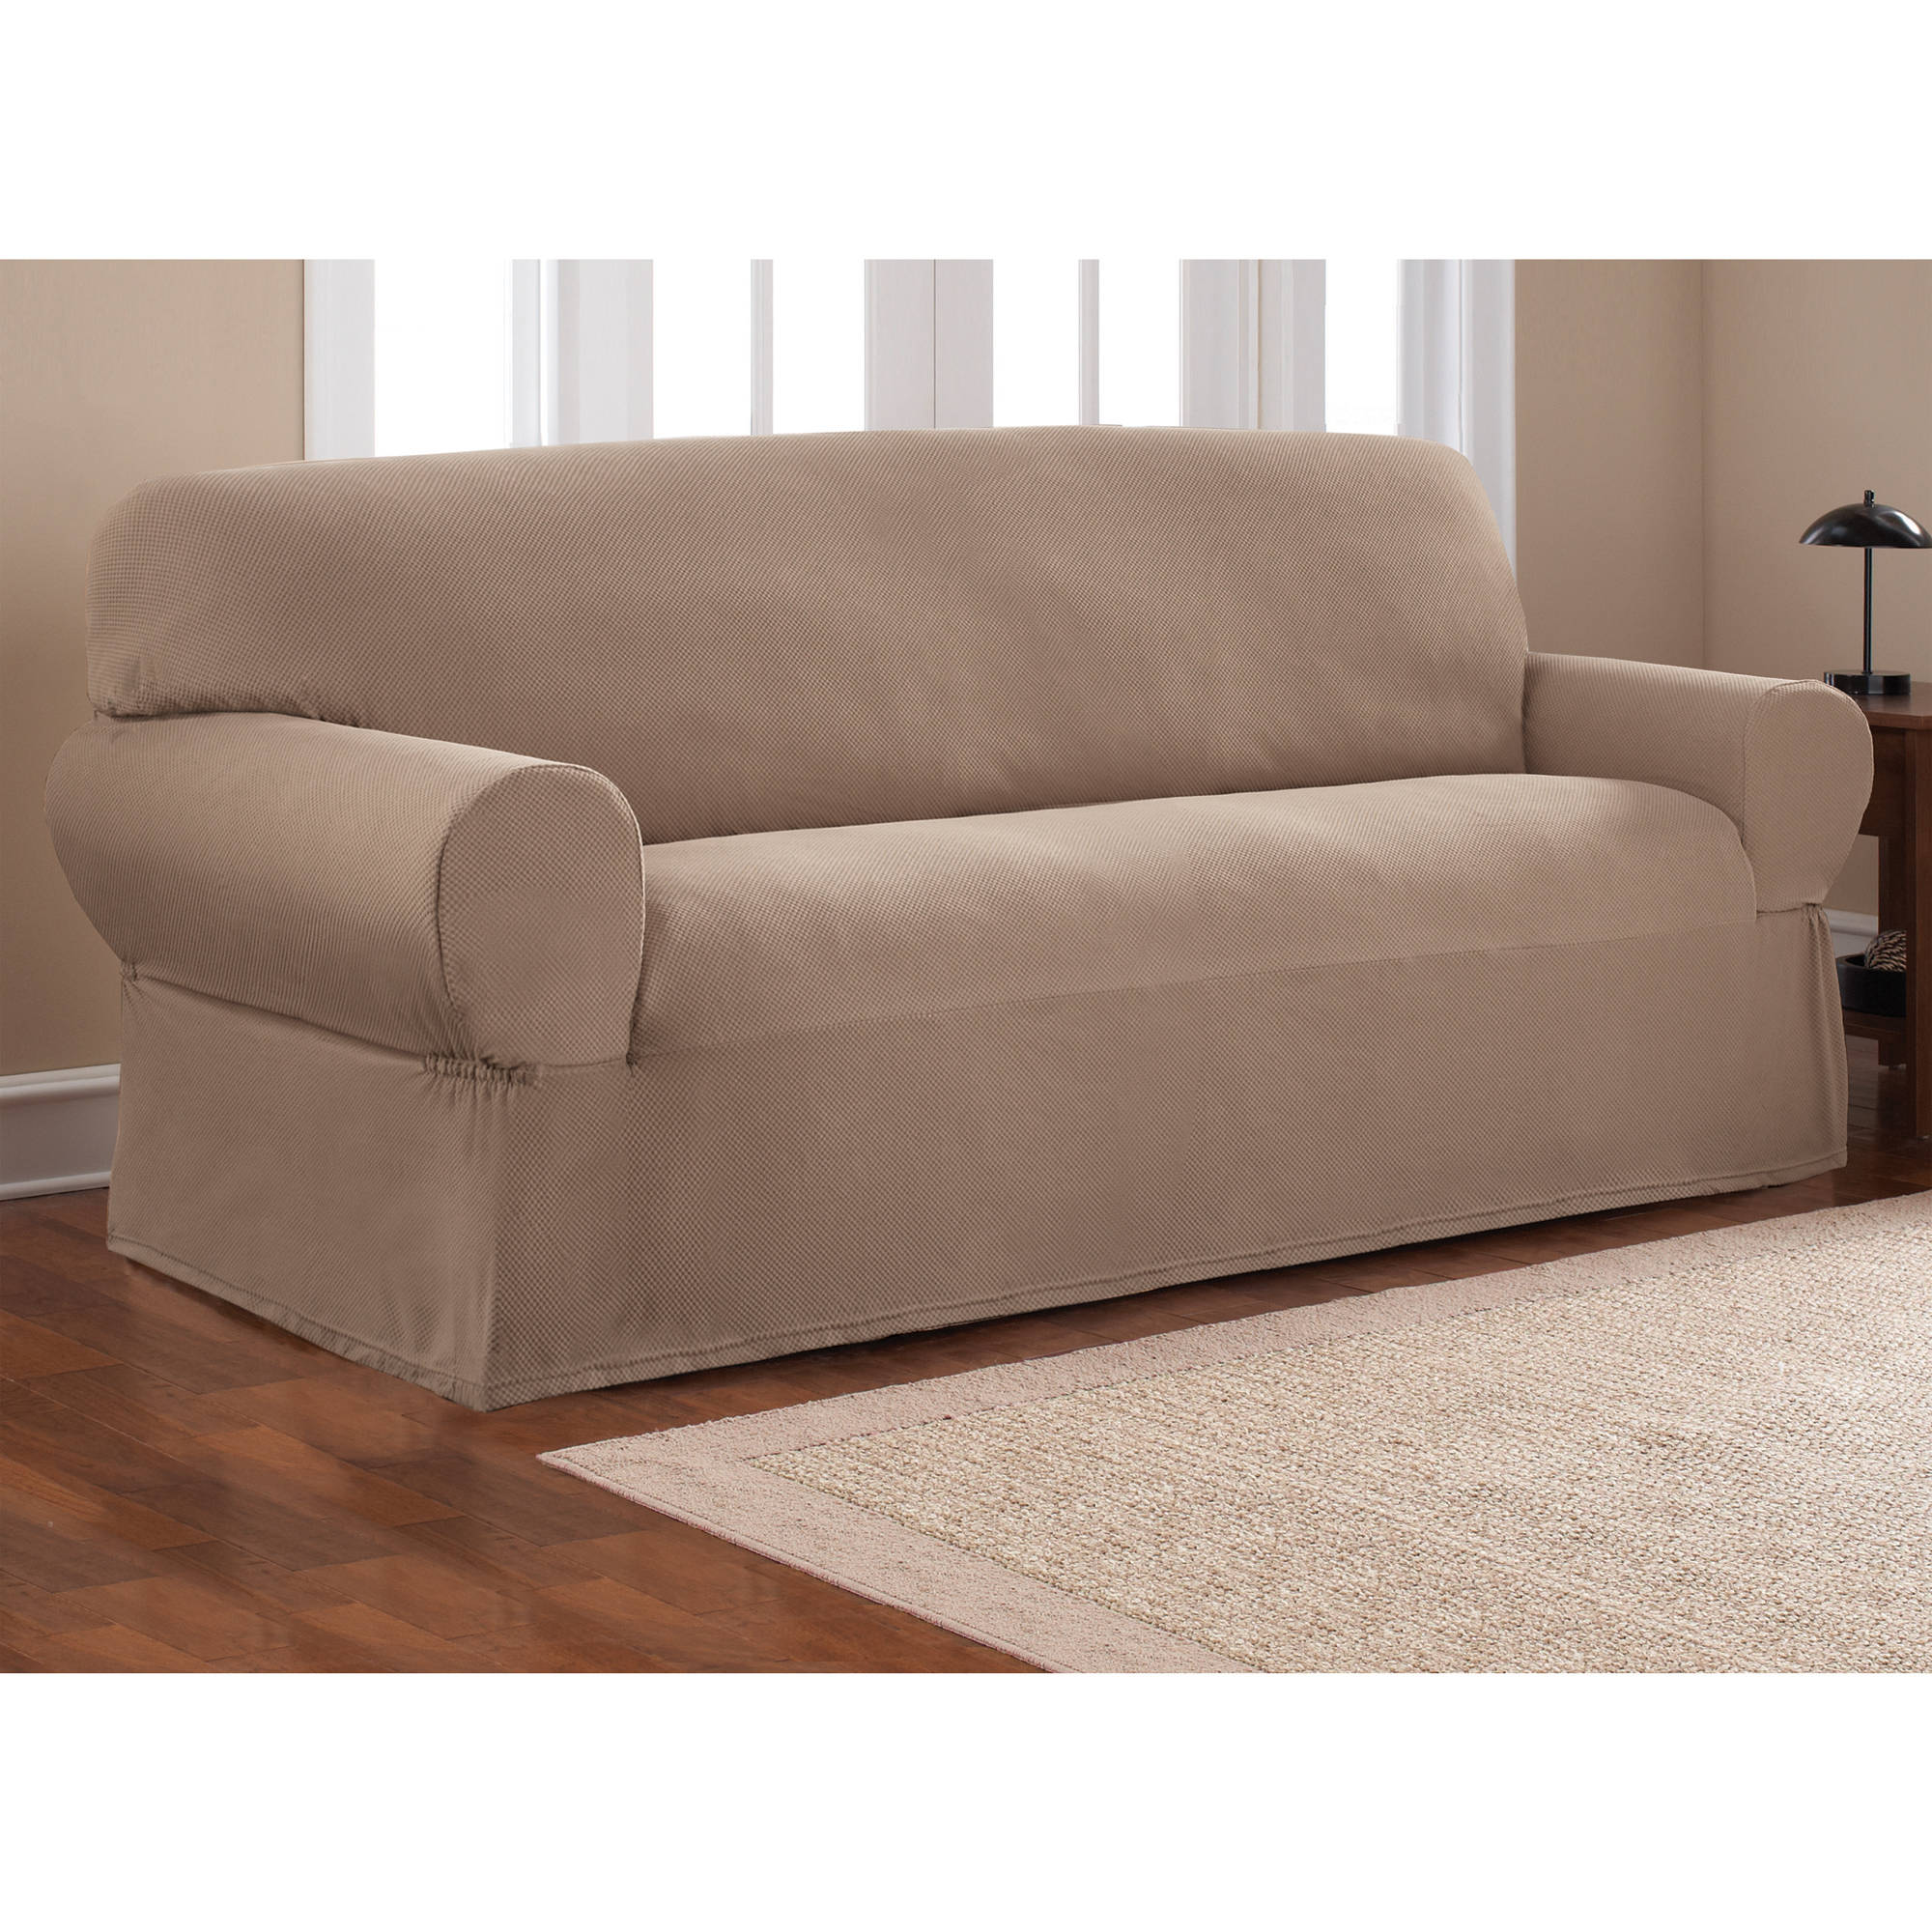 sofa cover mainstays 1-piece stretch fabric sofa slipcover - walmart.com BUQSDKZ